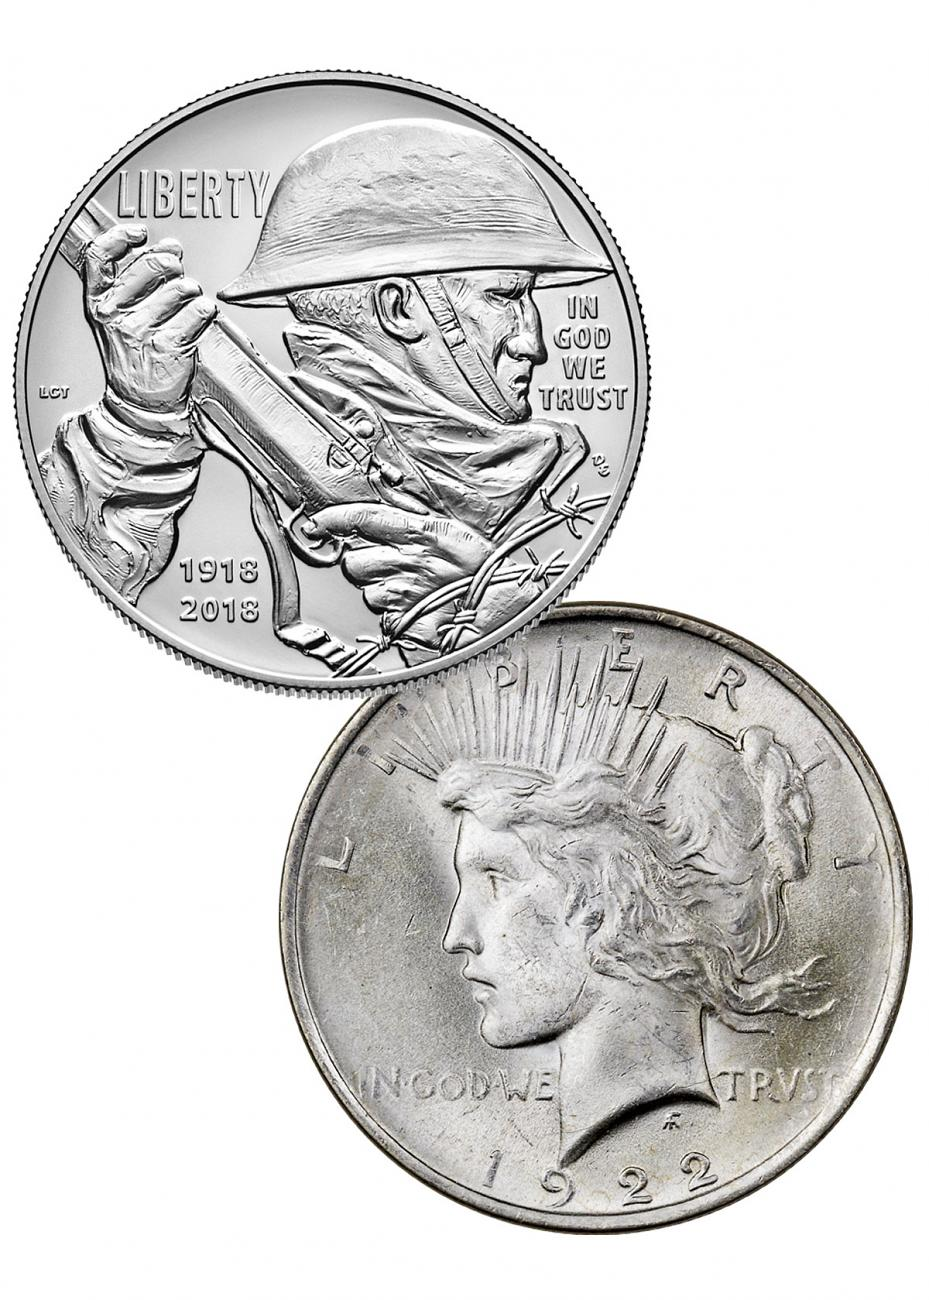 2-Coin Set - 2018-P World War I Centennial Commemorative Silver Dollar Coin + 1922 Silver Peace Dollar Coin GEM BU